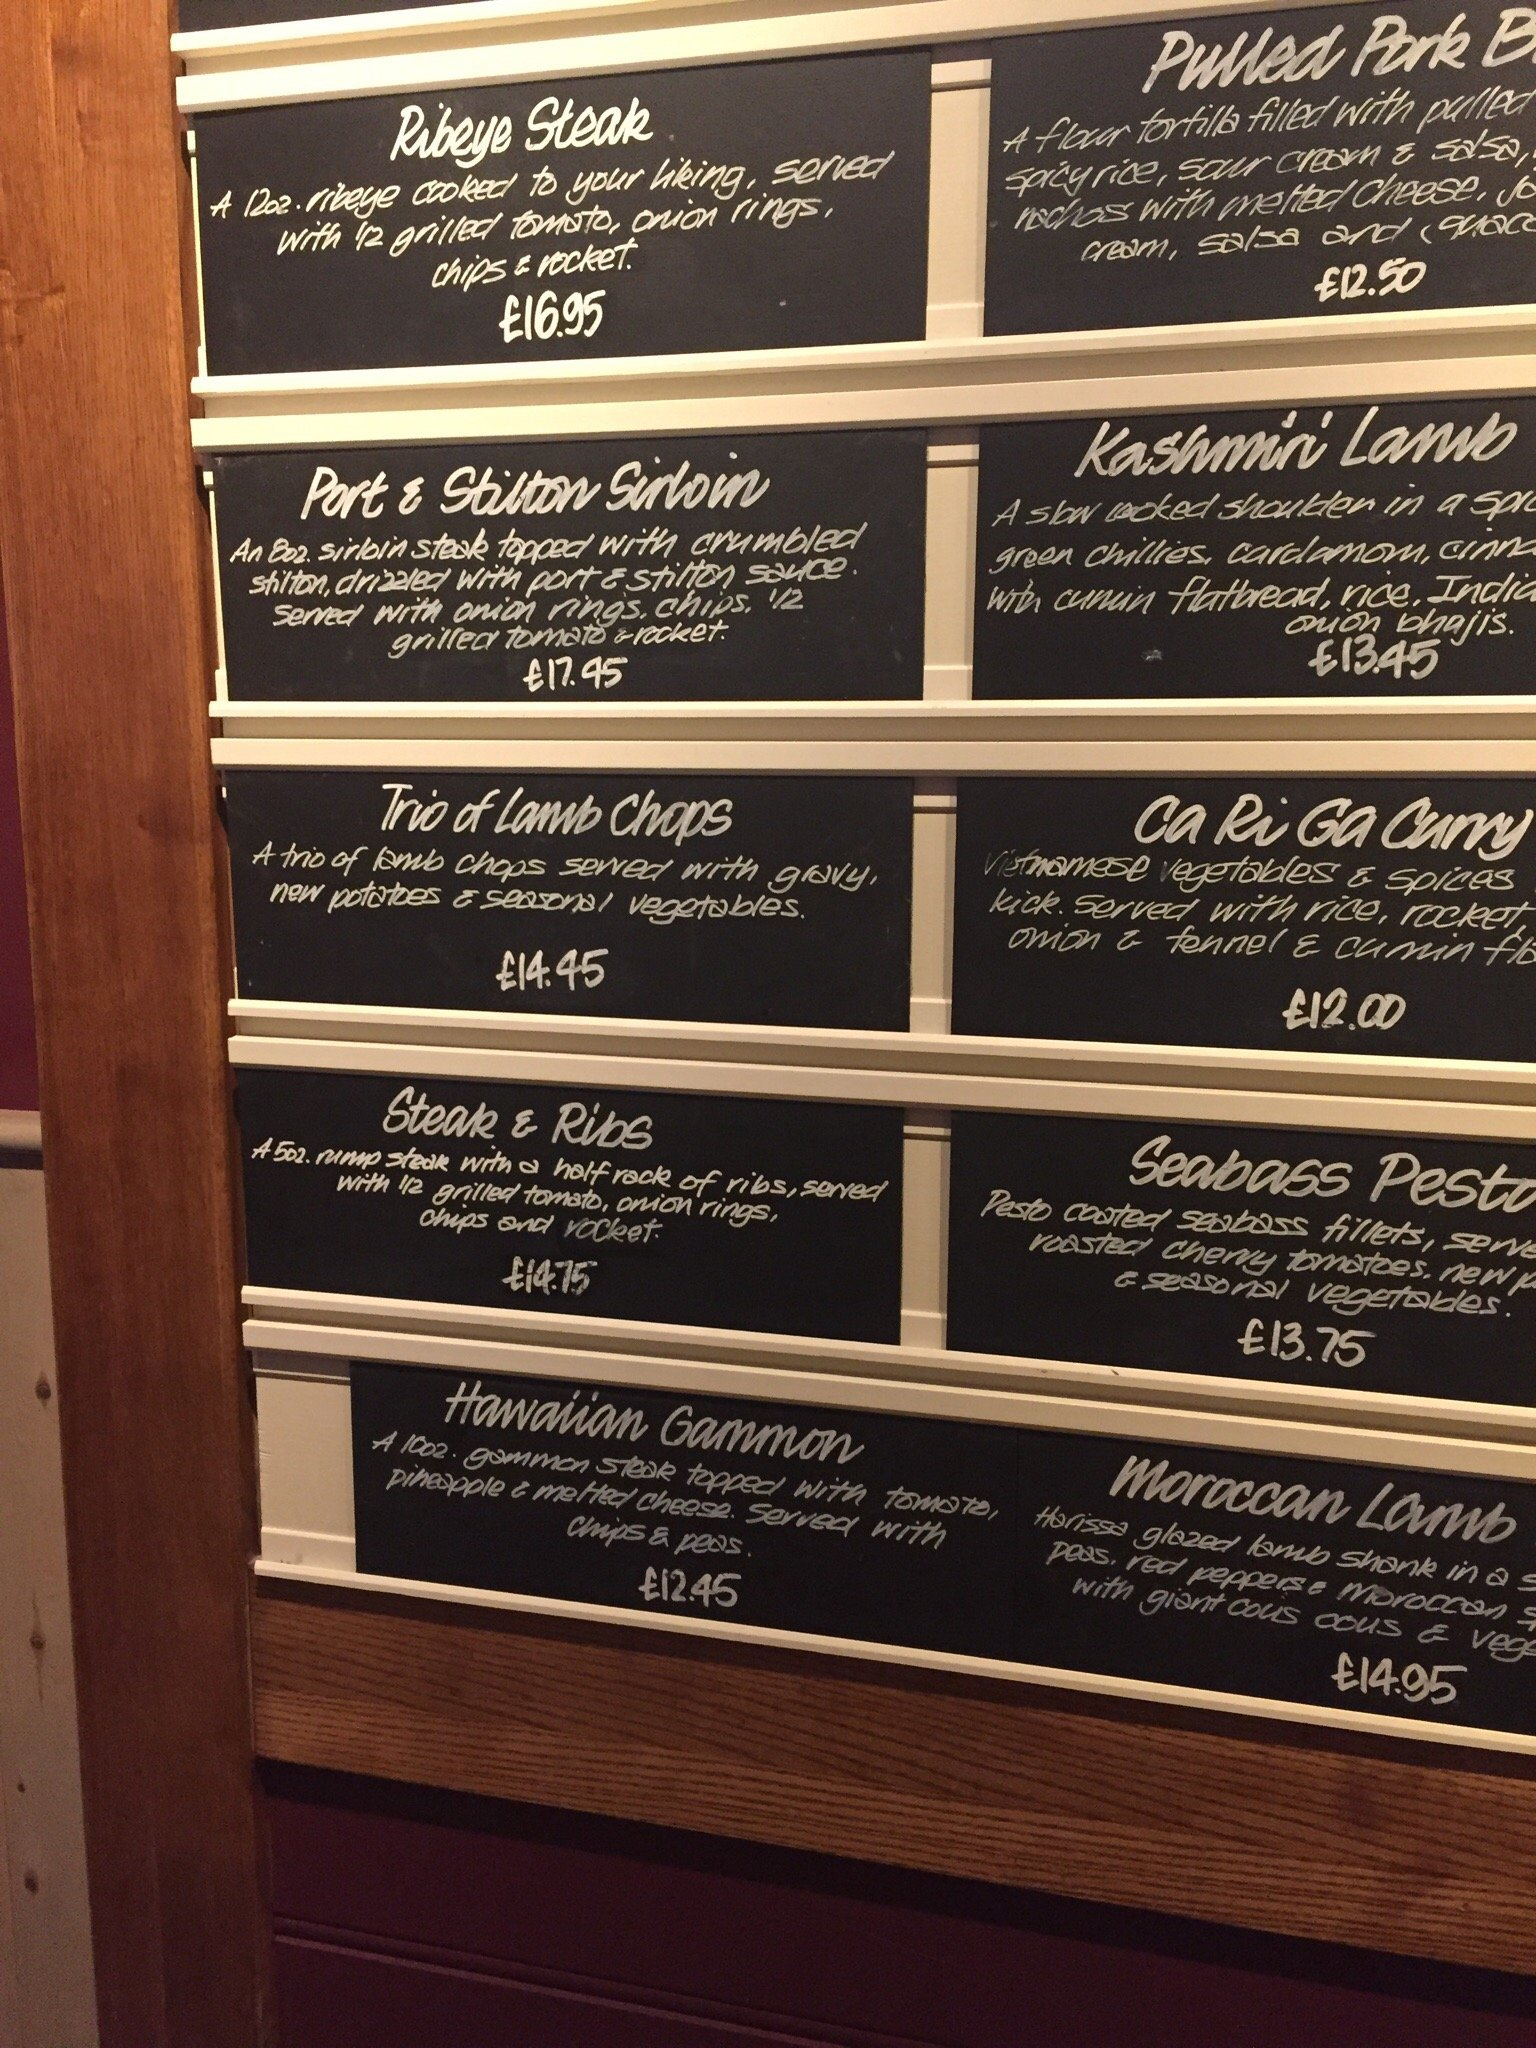 Unusual Riverside Inn Northwich  Restaurant Reviews Phone Number  With Fascinating Riverside Inn Northwich  Restaurant Reviews Phone Number  Photos   Tripadvisor With Amusing Oriental Garden Cardiff Also Gardeners World Magazine Subscription In Addition The Secret Garden Notes And Metal Garden Trellis Panels As Well As Gardening Basket Additionally Large Garden Fountains From Tripadvisorcouk With   Fascinating Riverside Inn Northwich  Restaurant Reviews Phone Number  With Amusing Riverside Inn Northwich  Restaurant Reviews Phone Number  Photos   Tripadvisor And Unusual Oriental Garden Cardiff Also Gardeners World Magazine Subscription In Addition The Secret Garden Notes From Tripadvisorcouk